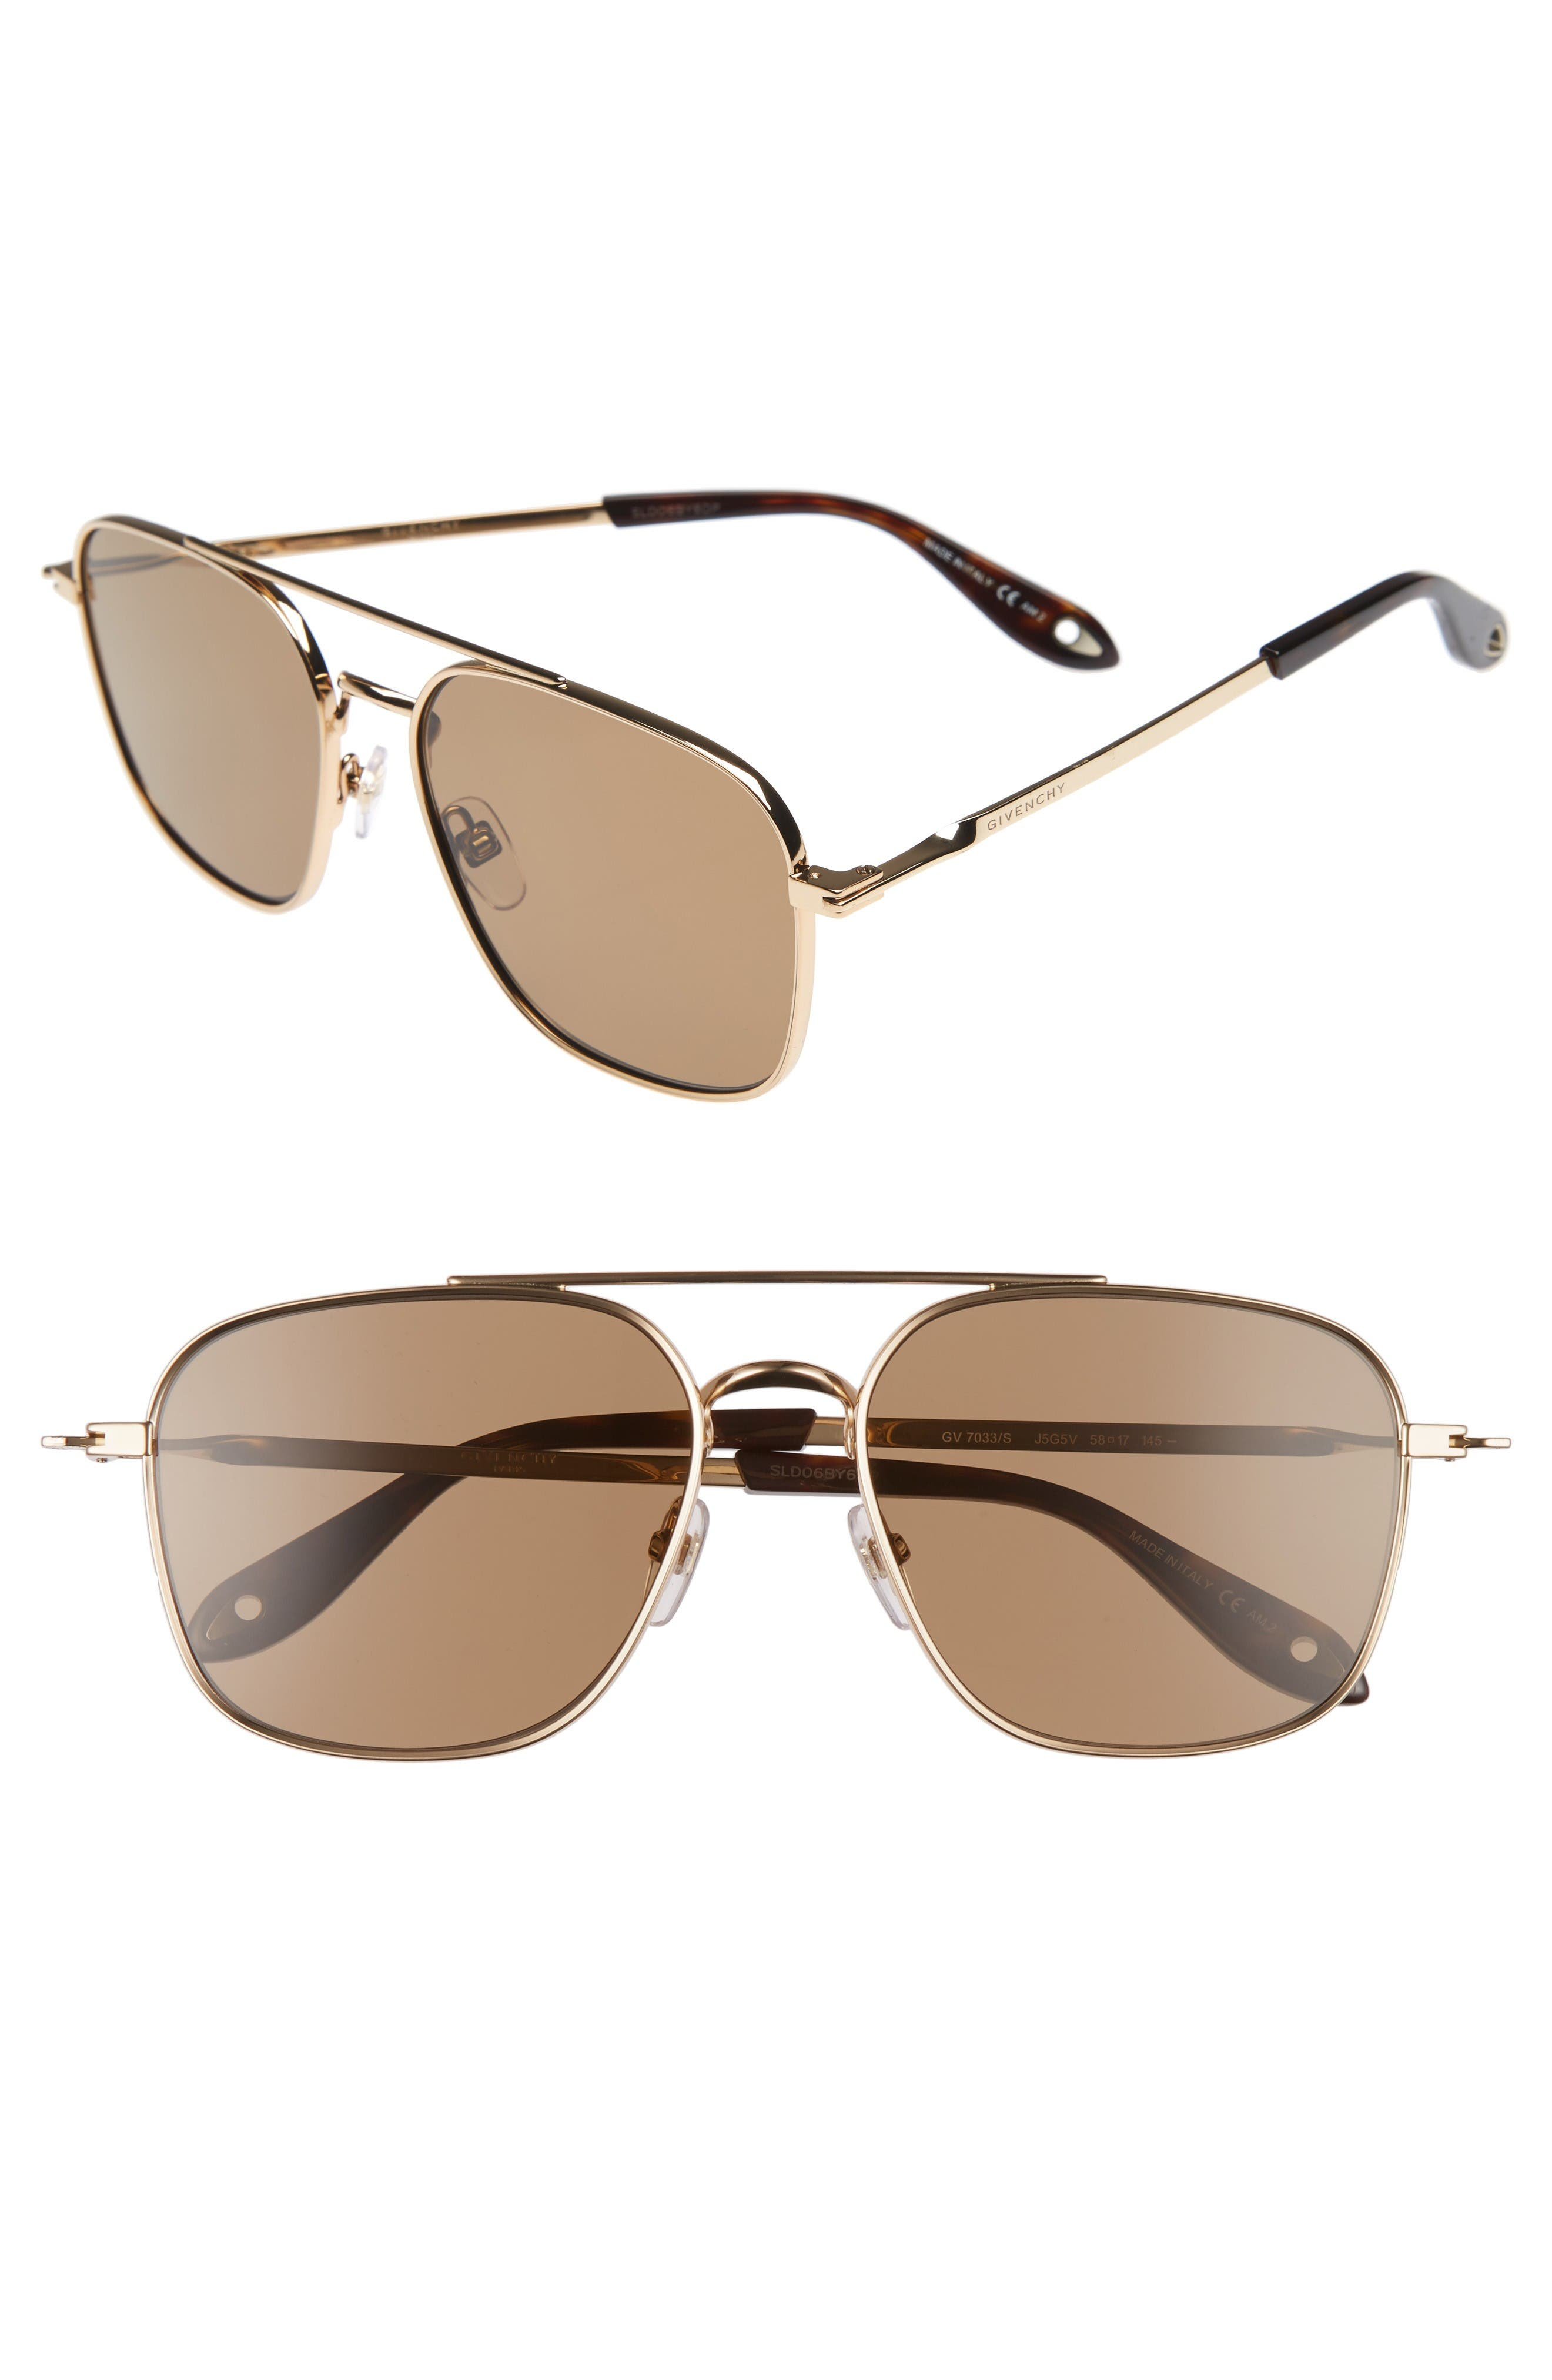 Givenchy 7033/S 58mm Sunglasses